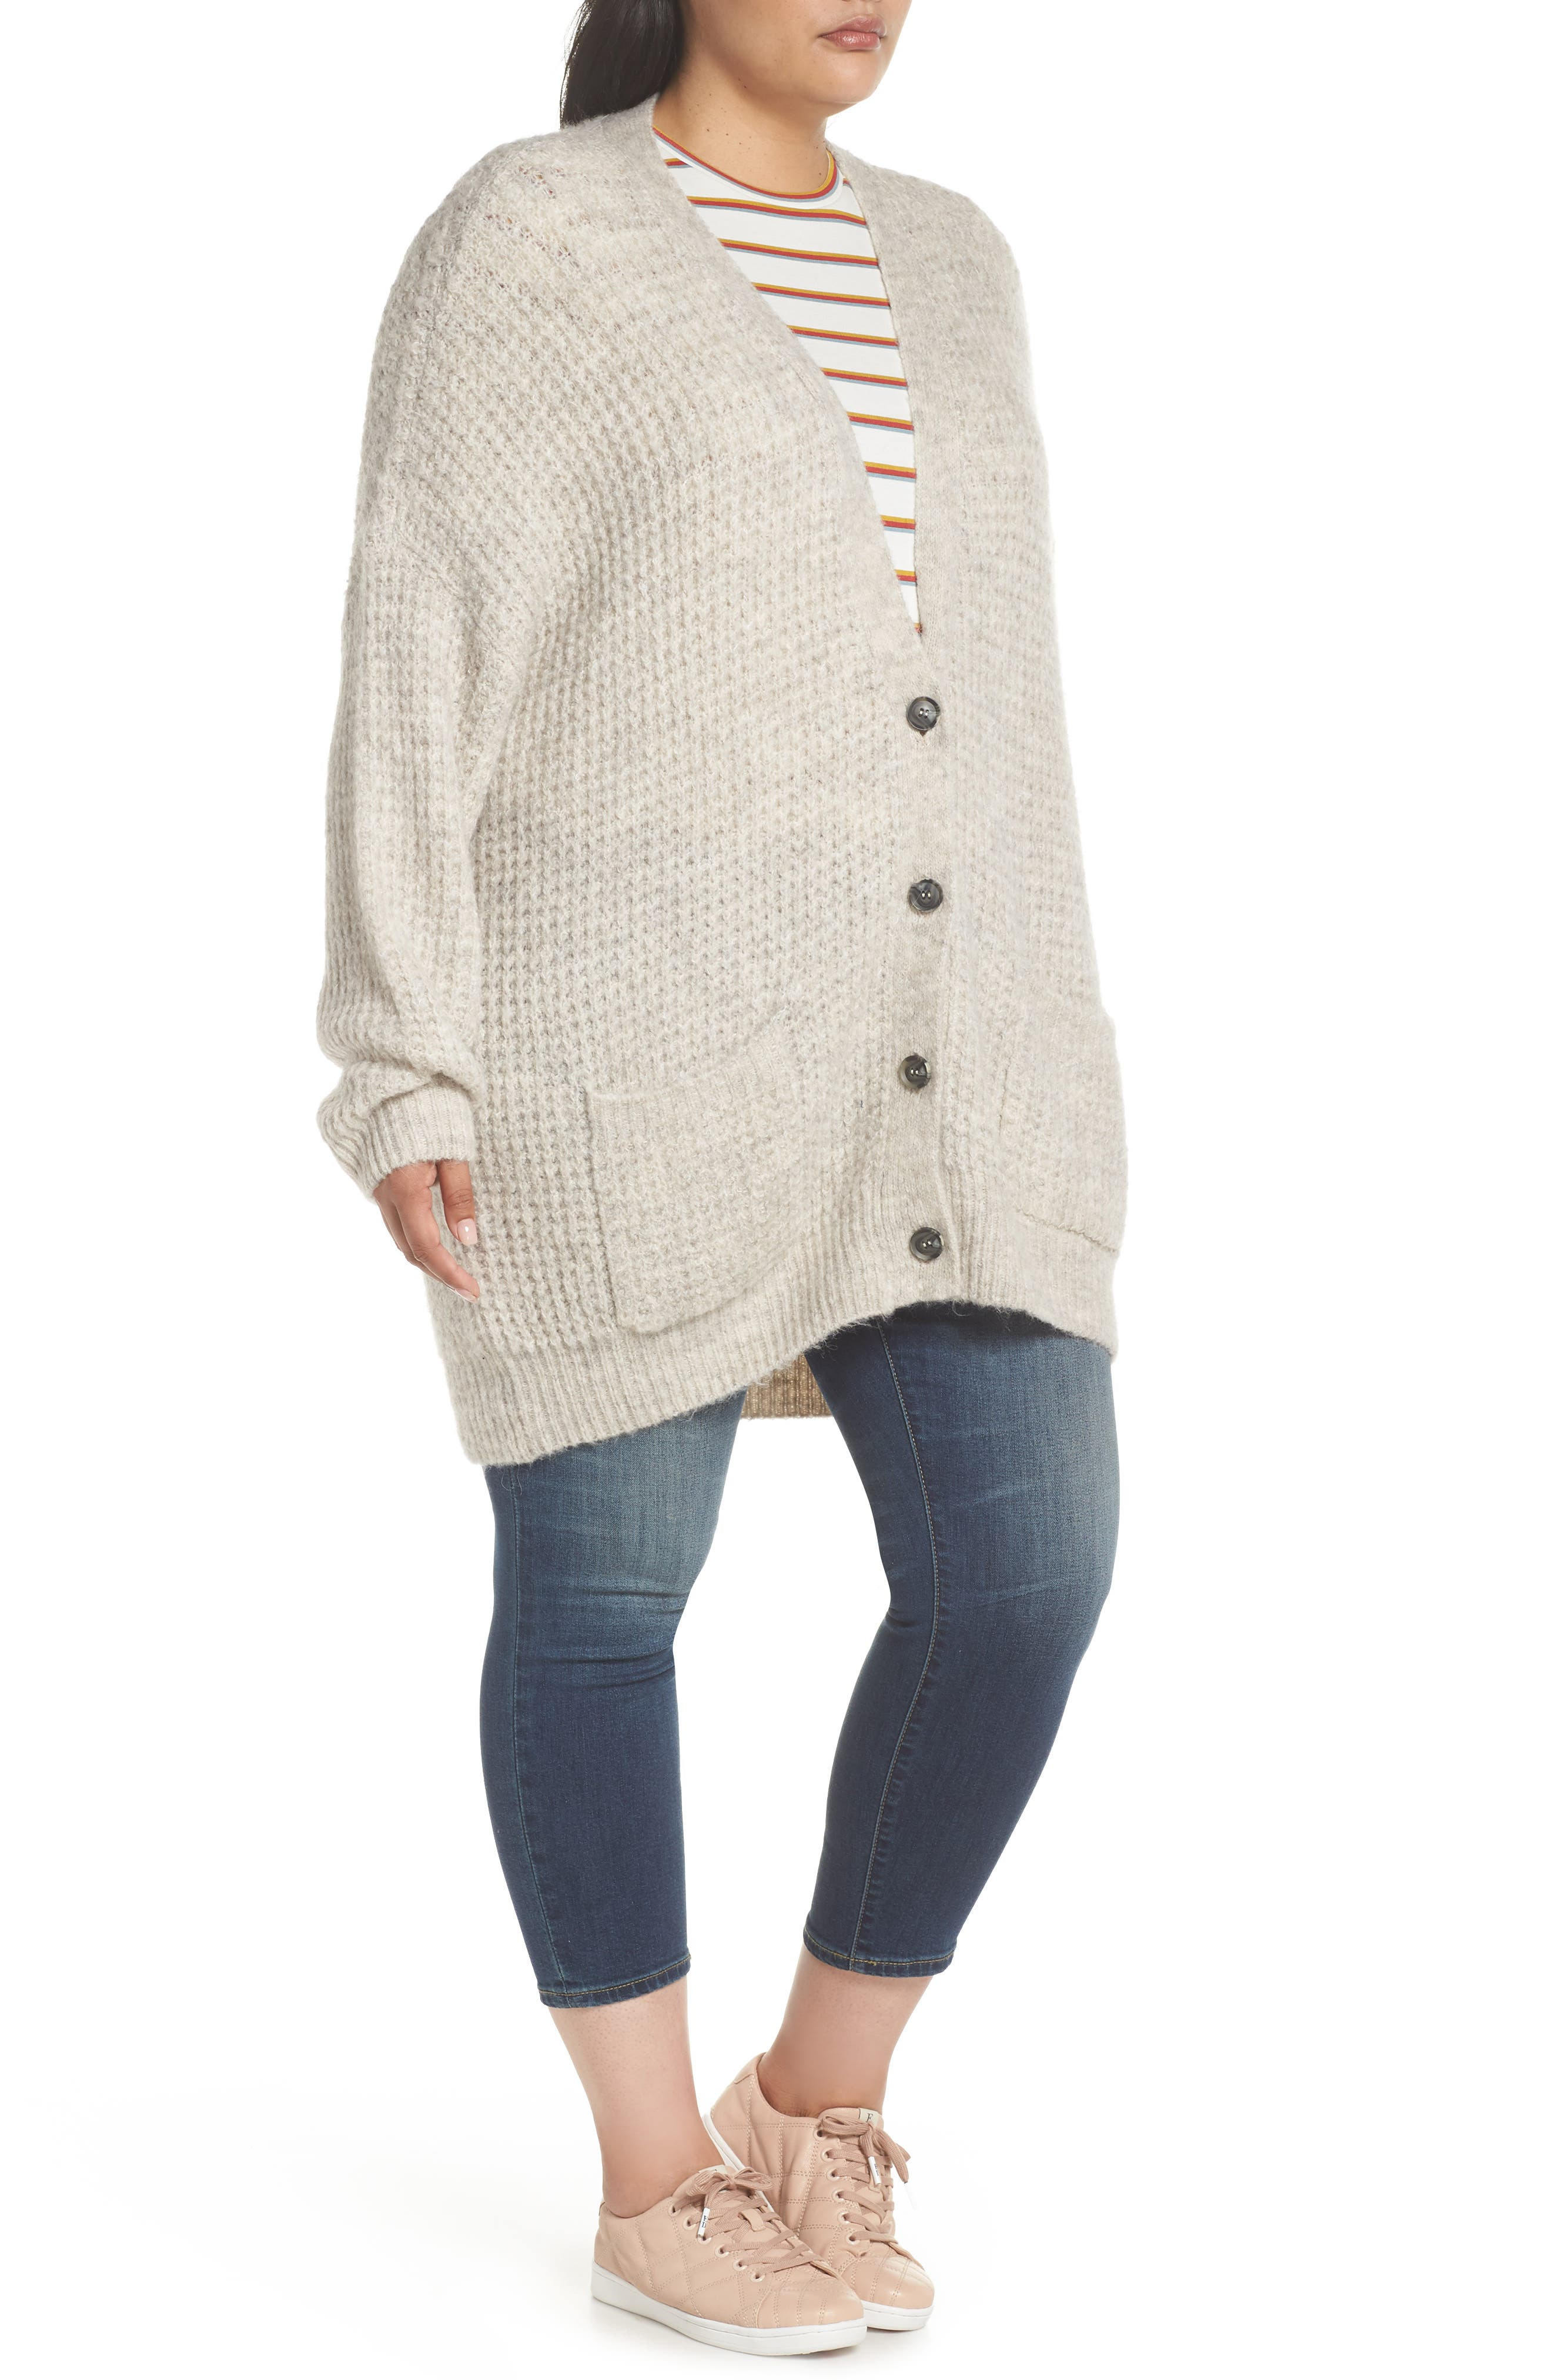 Oversized Waffle Stitch Cardigan,                             Alternate thumbnail 9, color,                             BEIGE BIRCH